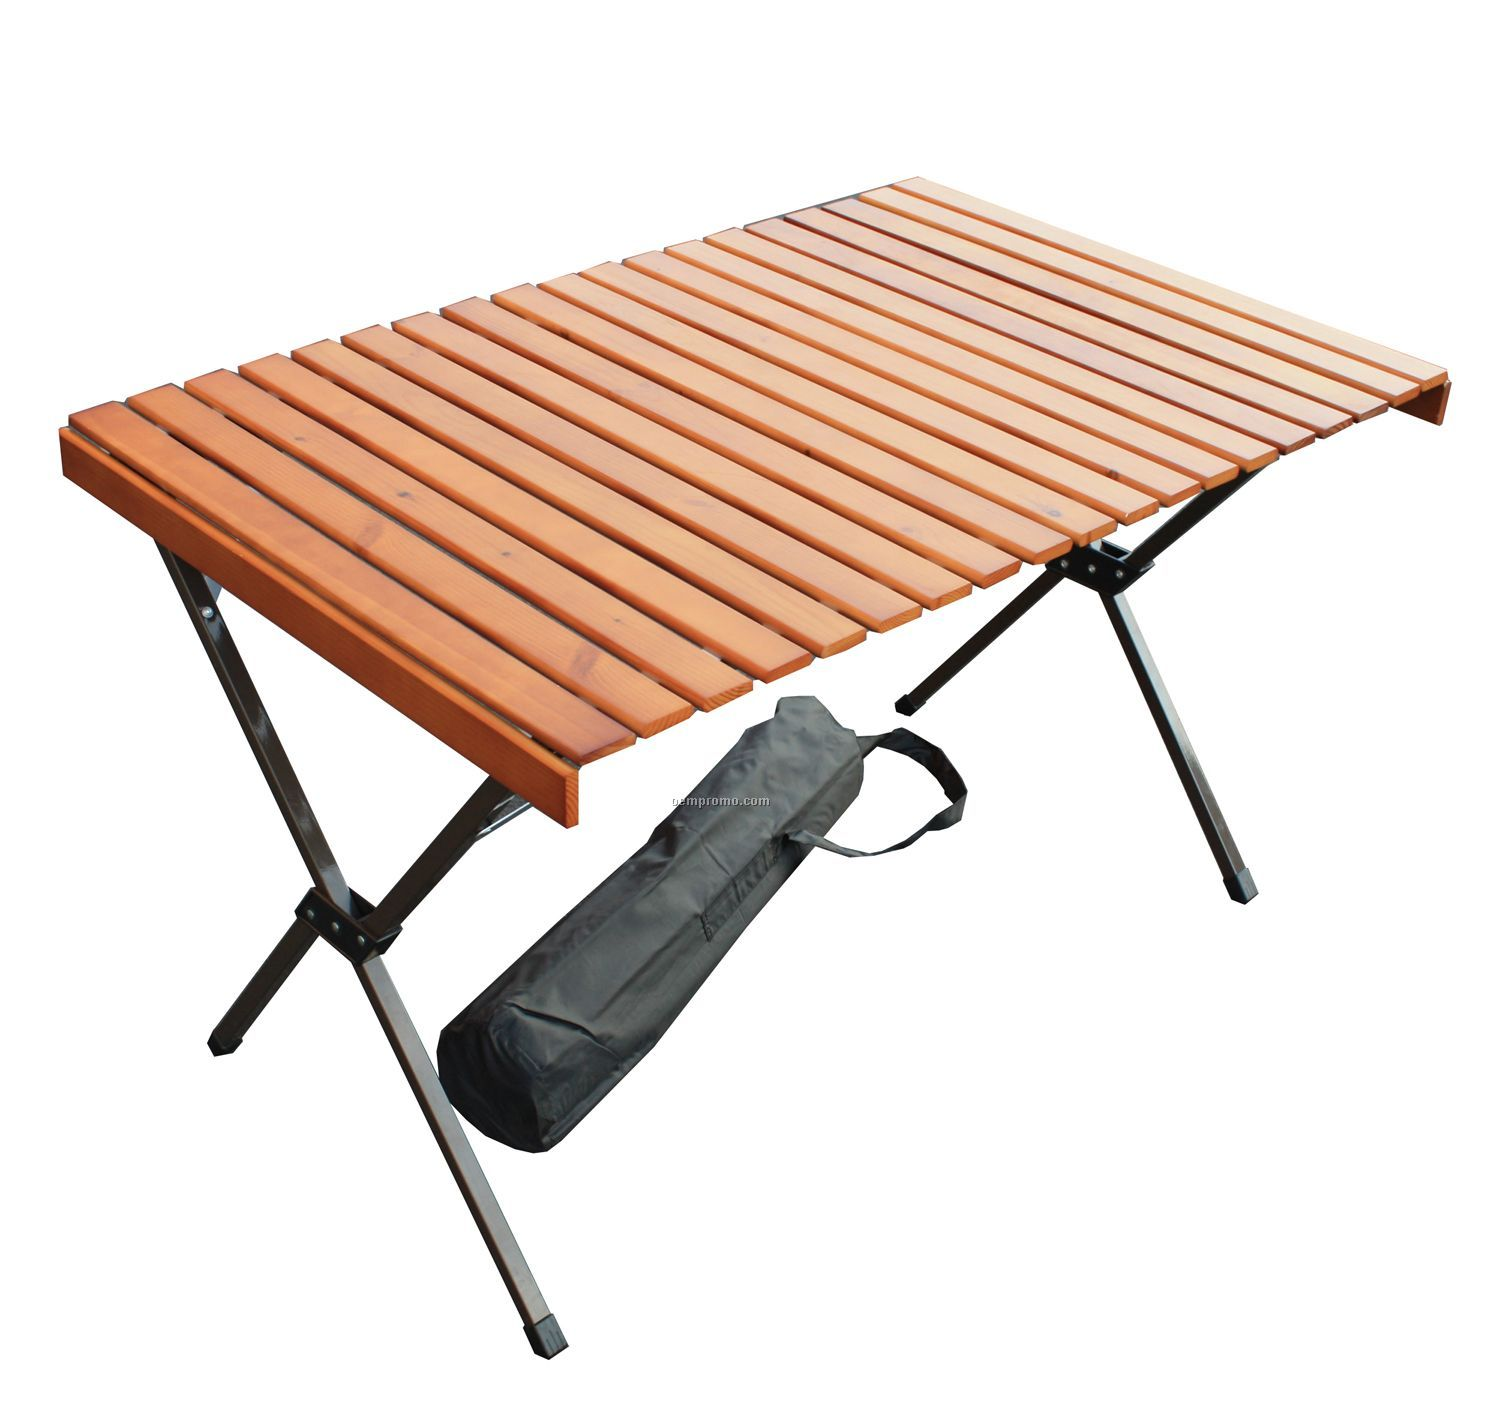 Large Wood Picnic Portable Table In A Bag. Large Wood Picnic Portable Table In A Bag  43 X27 X27   China